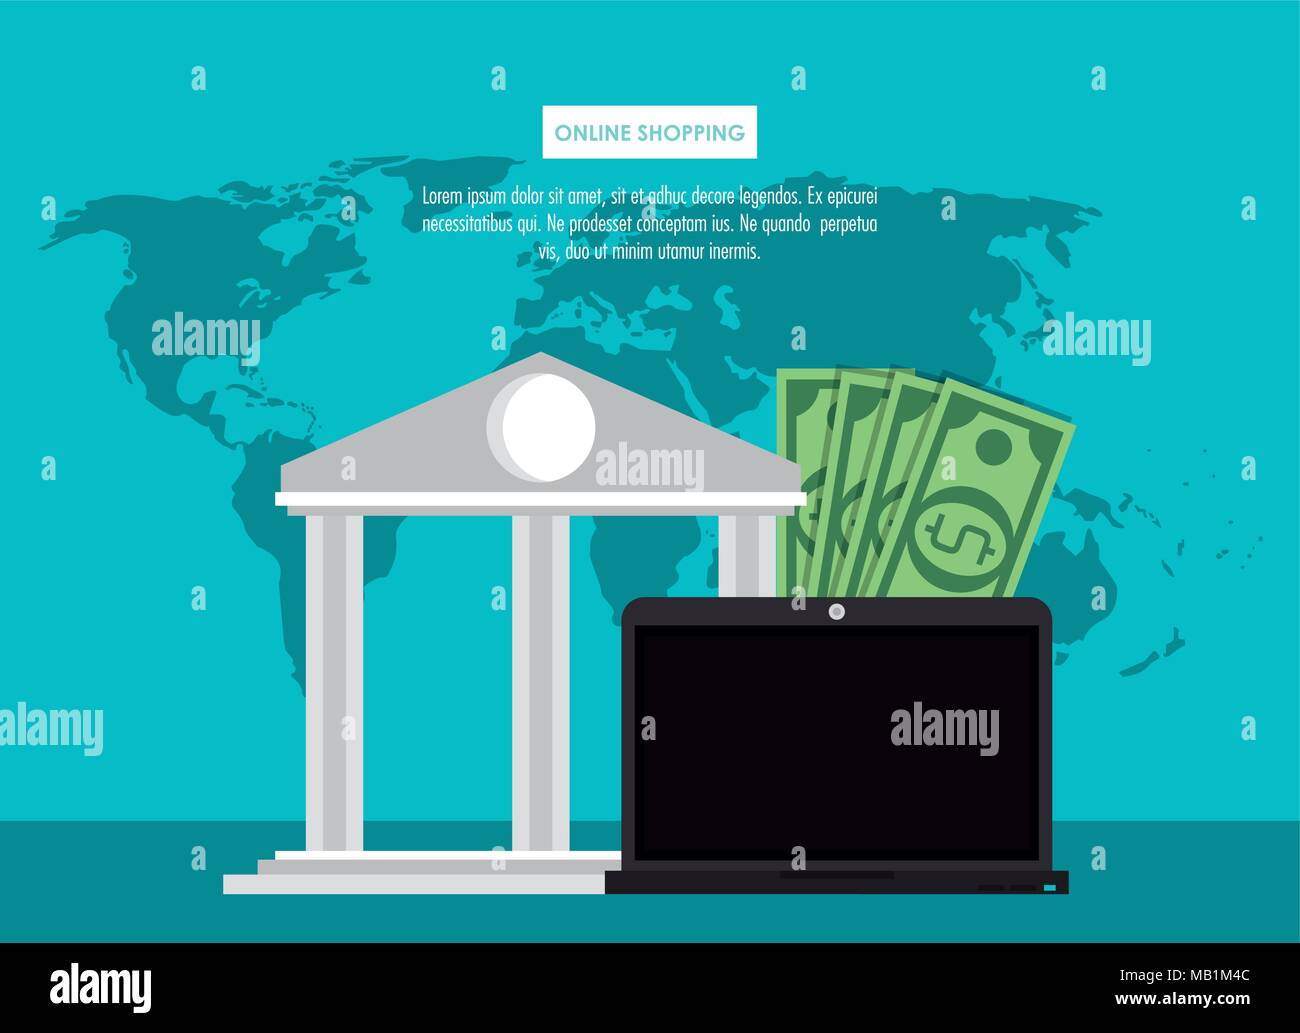 Online secure shopping and transactions - Stock Image